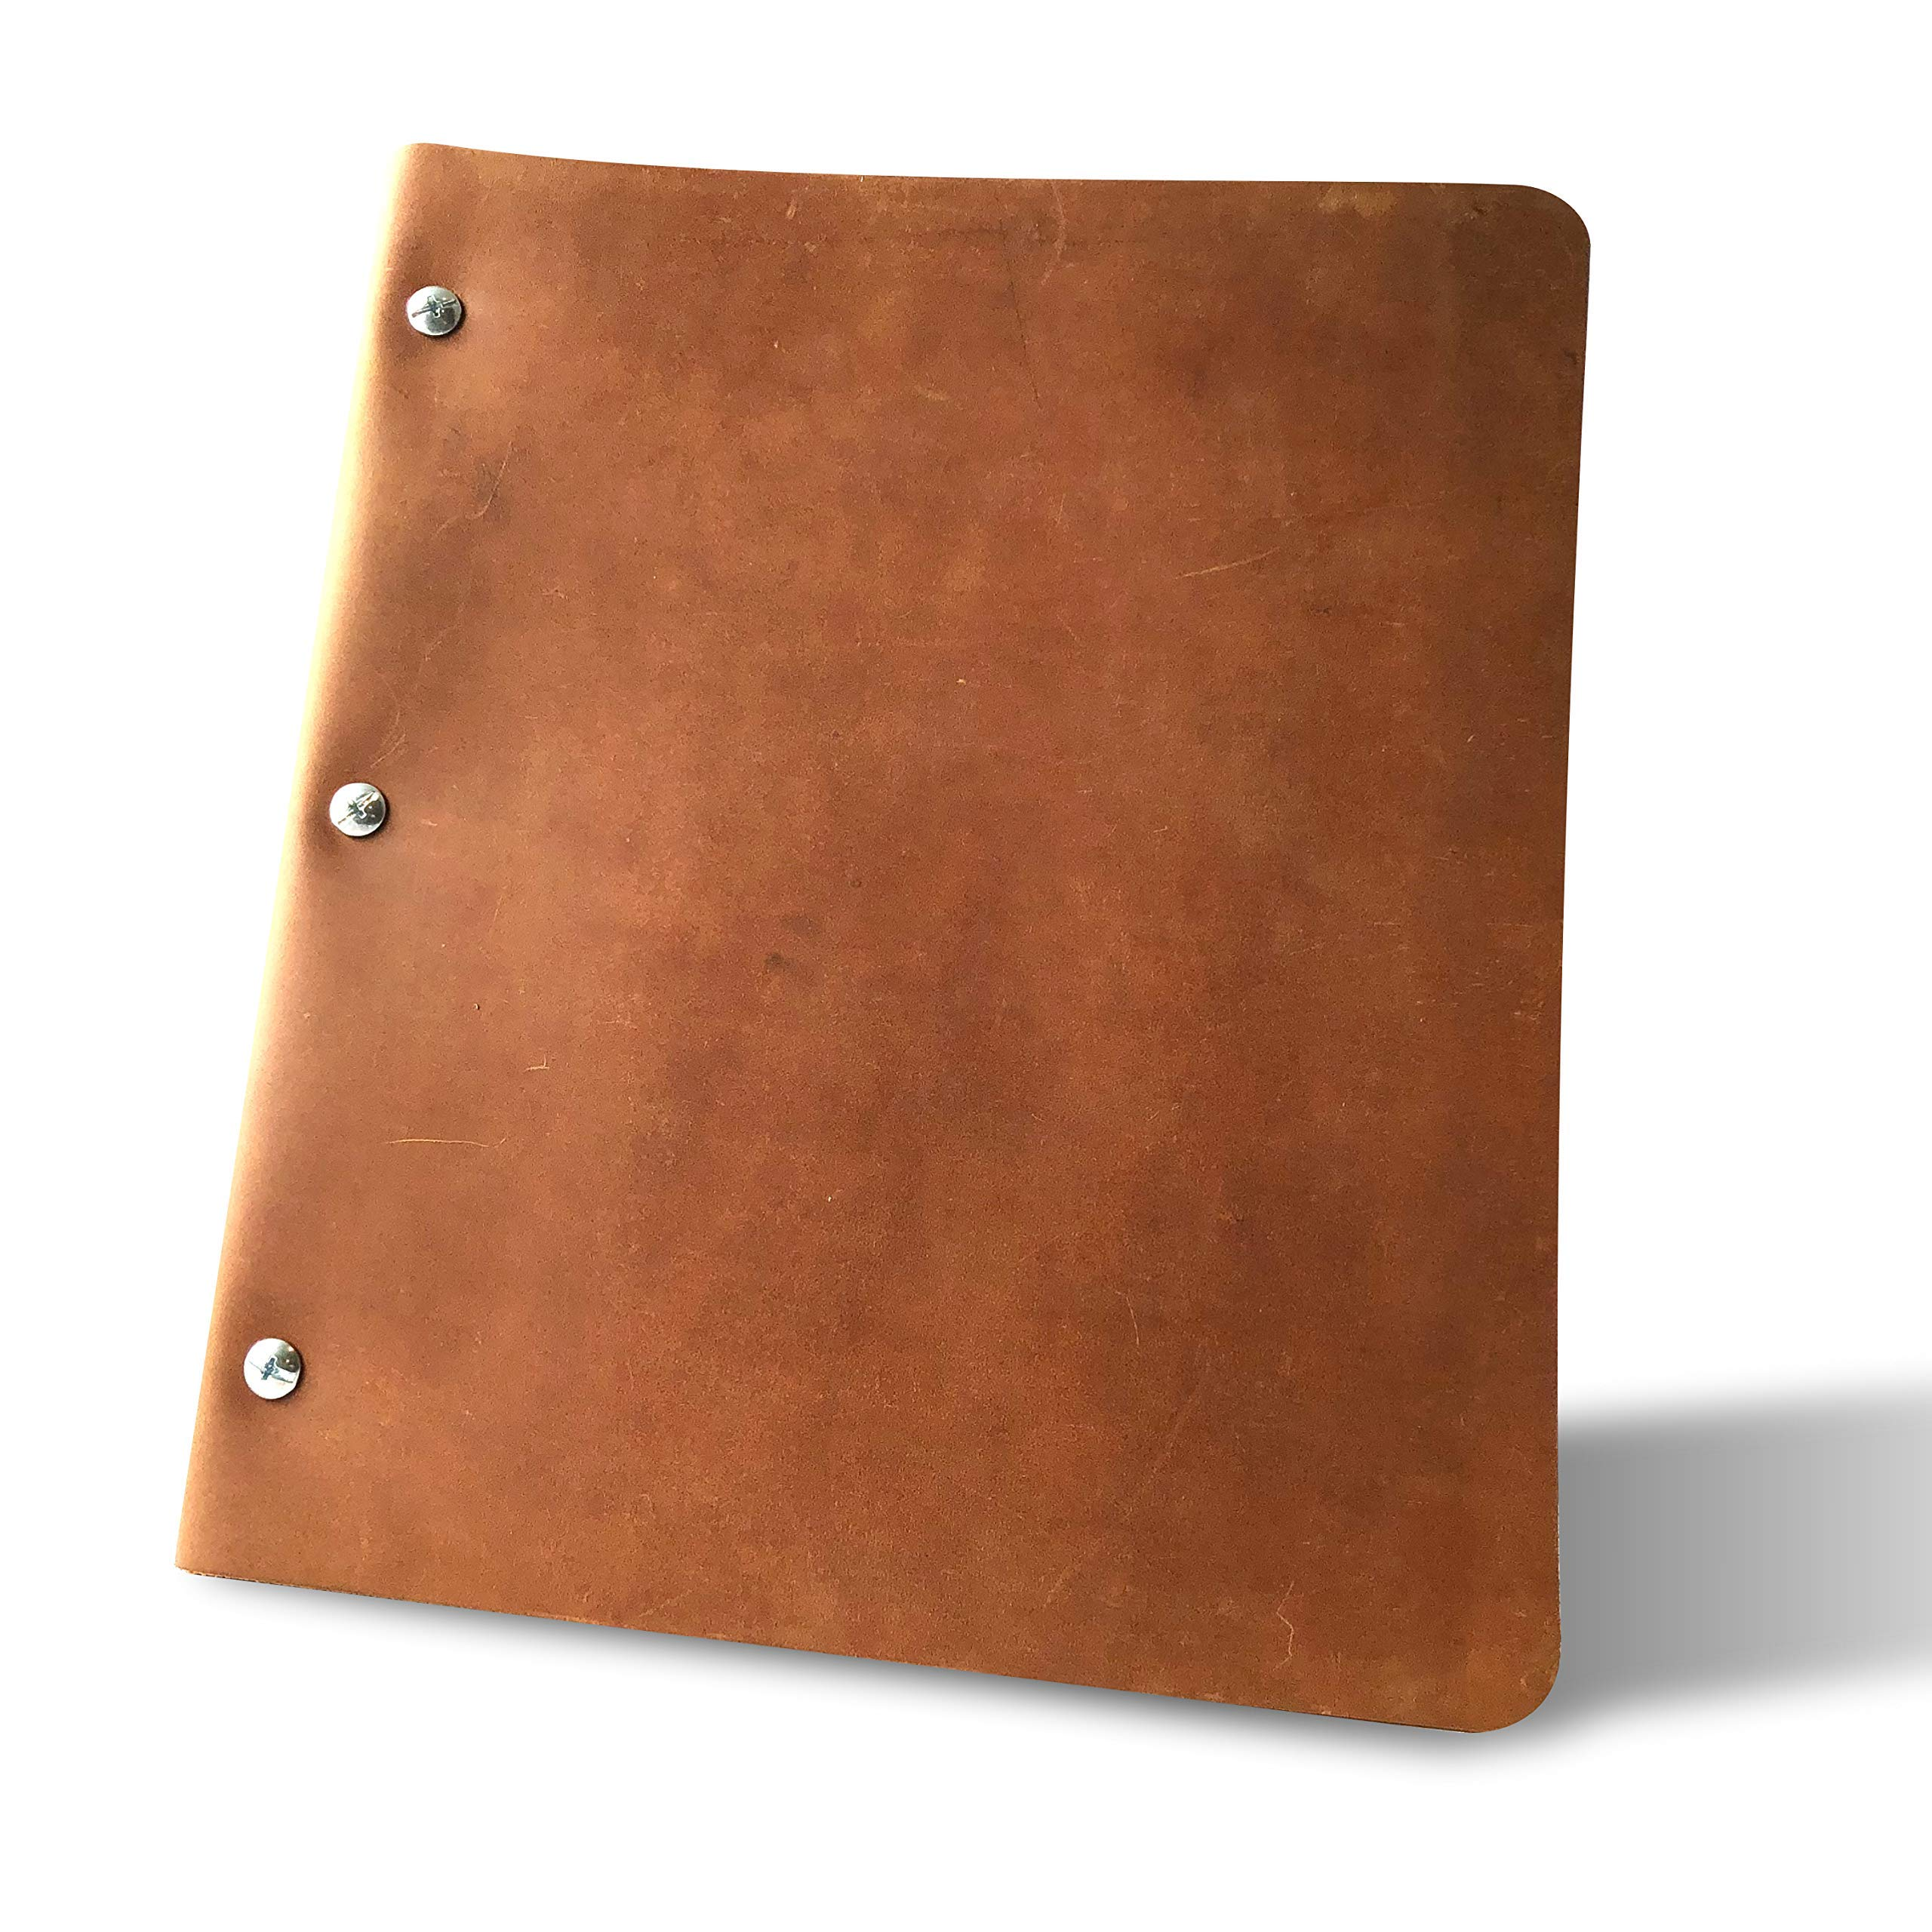 Murdy No. 1 Leather Binder (Wide Cut, Espresso) (Renewed) by Murdy Creative Co